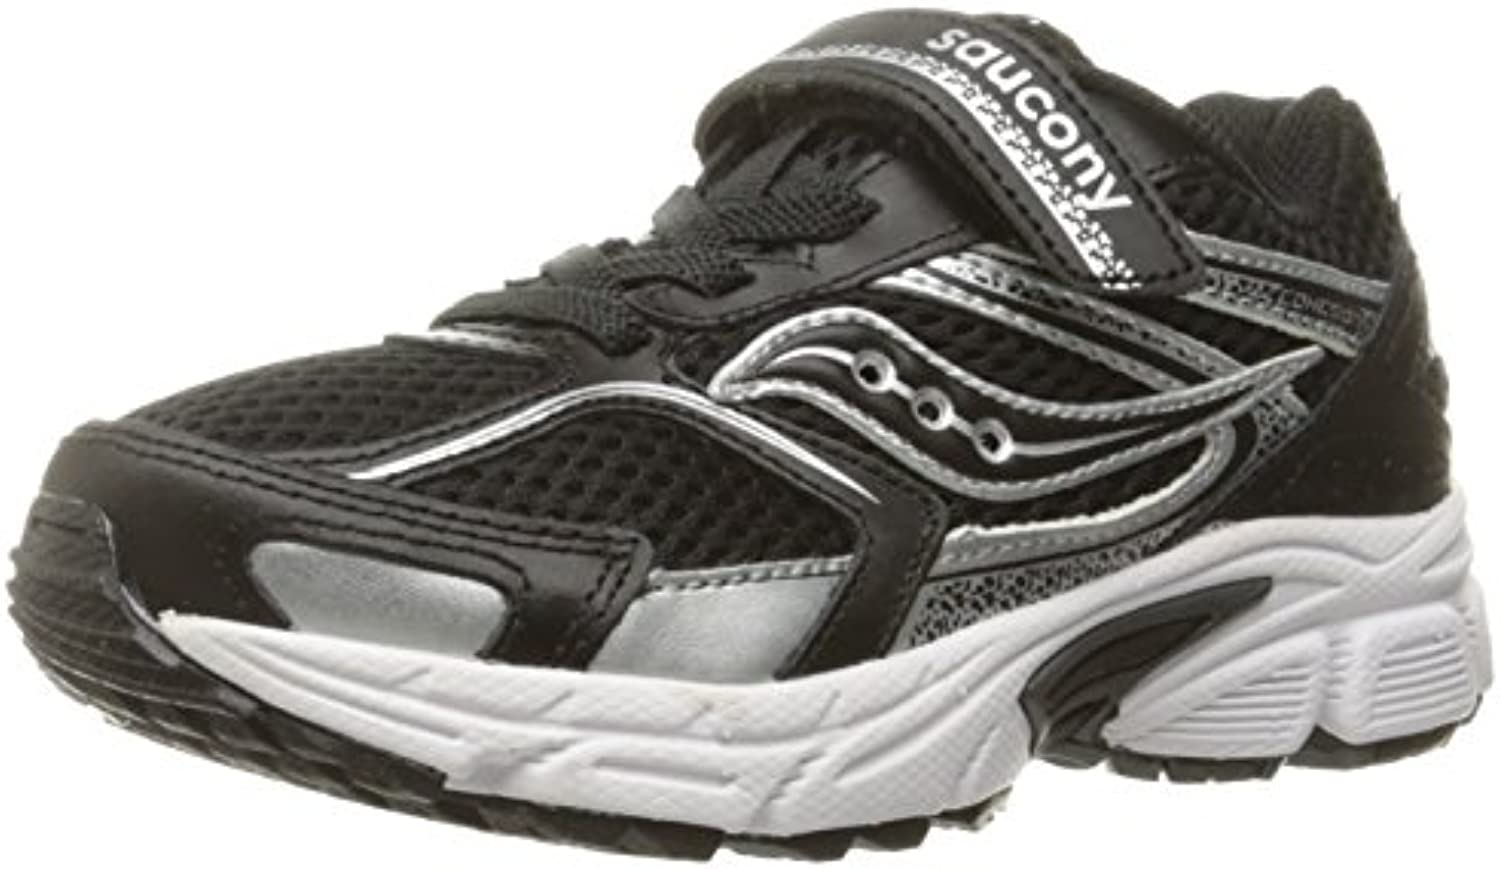 Saucony Cohesion 9 A/C Running Shoe Little Kid/Big Kid